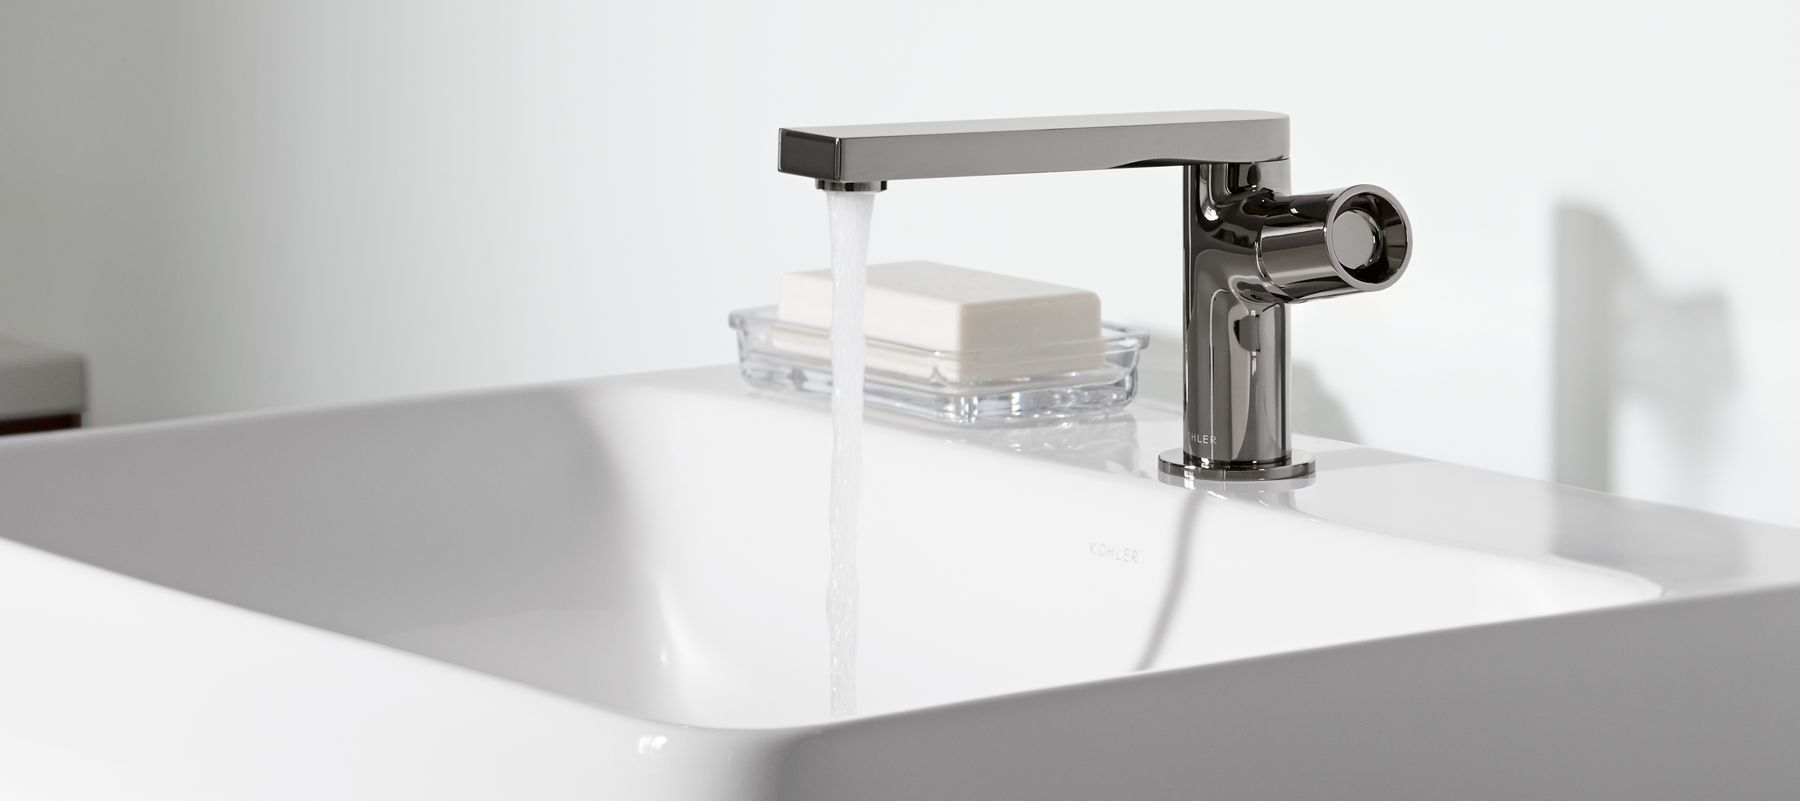 Bathroom Vanity Faucets bathroom sink faucets | bathroom faucets | bathroom | kohler